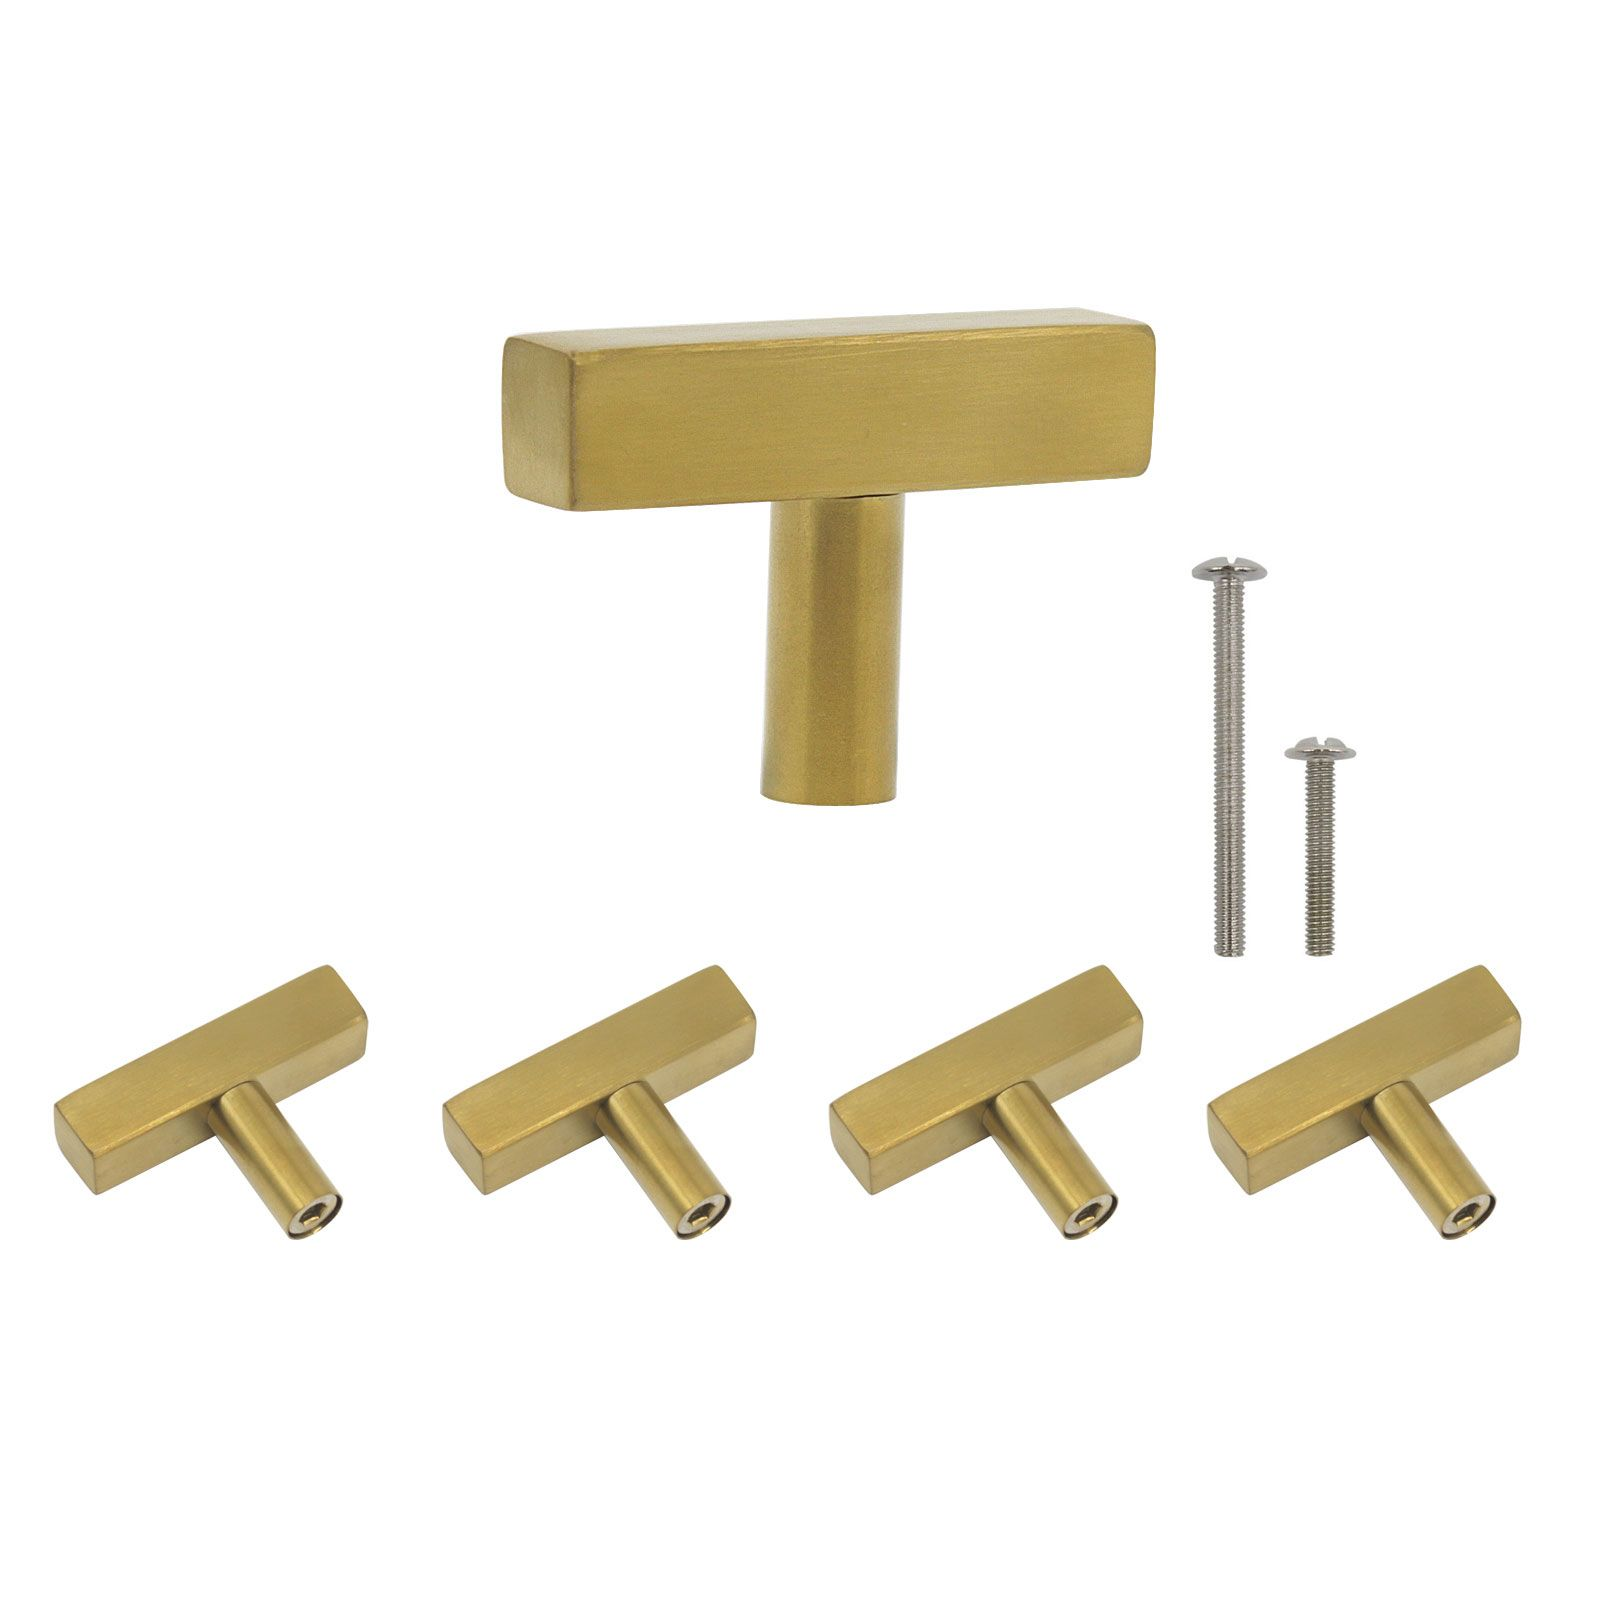 Probrico Brushed Brass Cabinet Pulls 2 Inch 50mm Length Kitchen Cabinet Pulls Modern Square Cabinet Pull